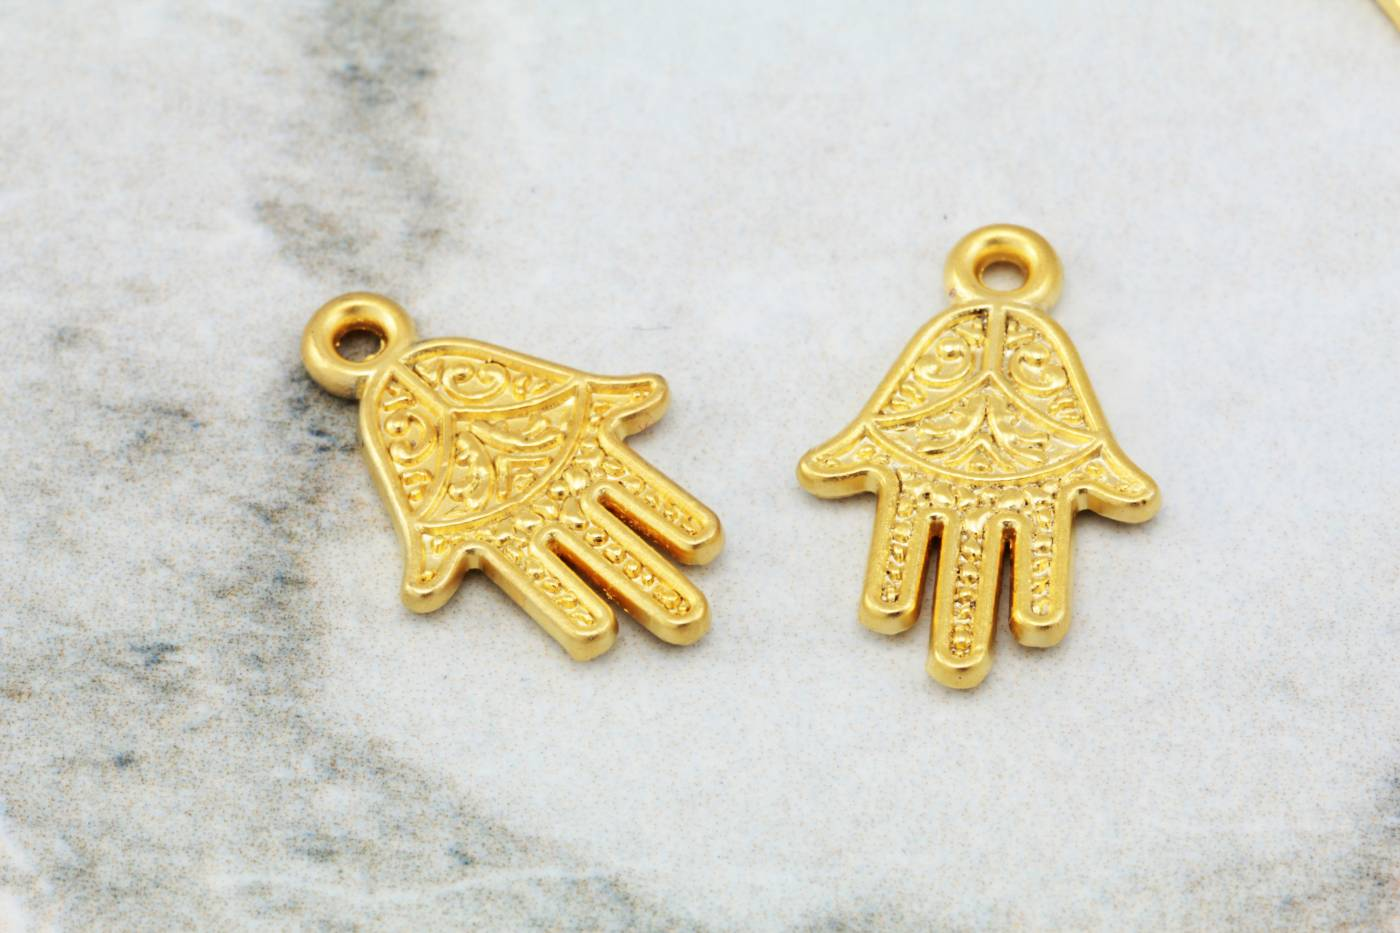 gold-jewelry-pendants-europe-supplies.jpg